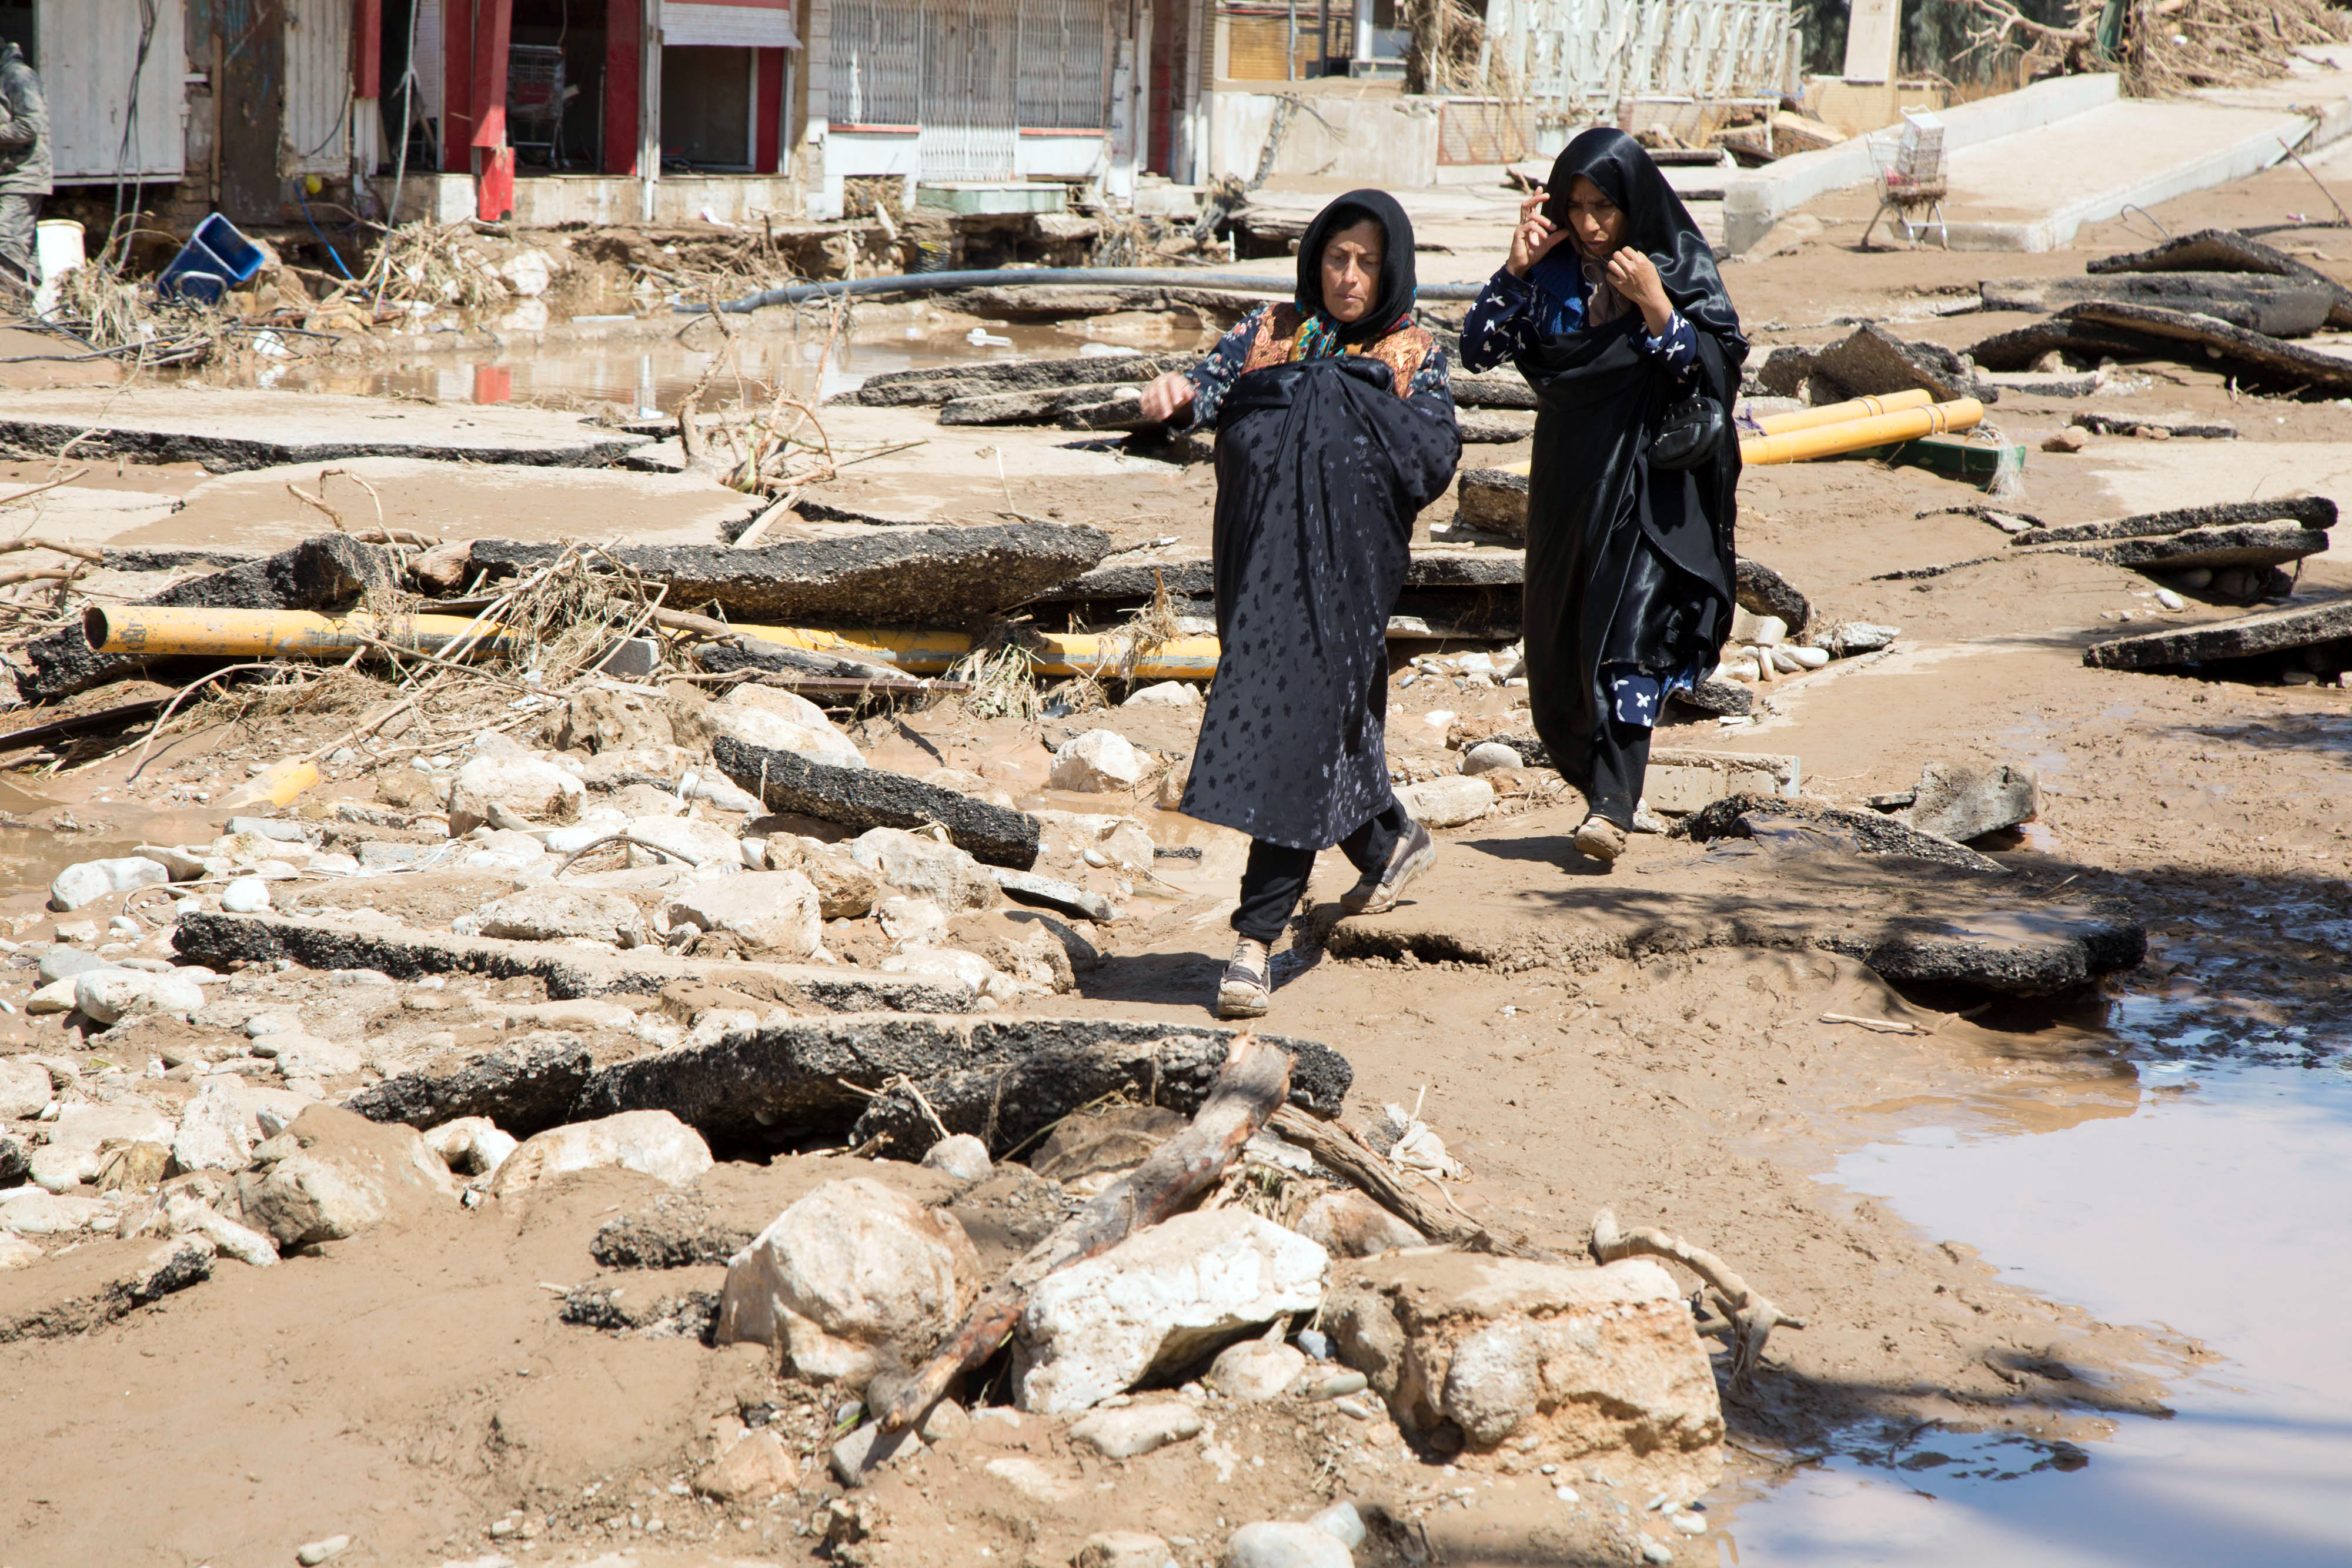 An Iranian woman walks through a flooded street in the city of Poldokhtar in the Lorestan province, April 02, 2019.